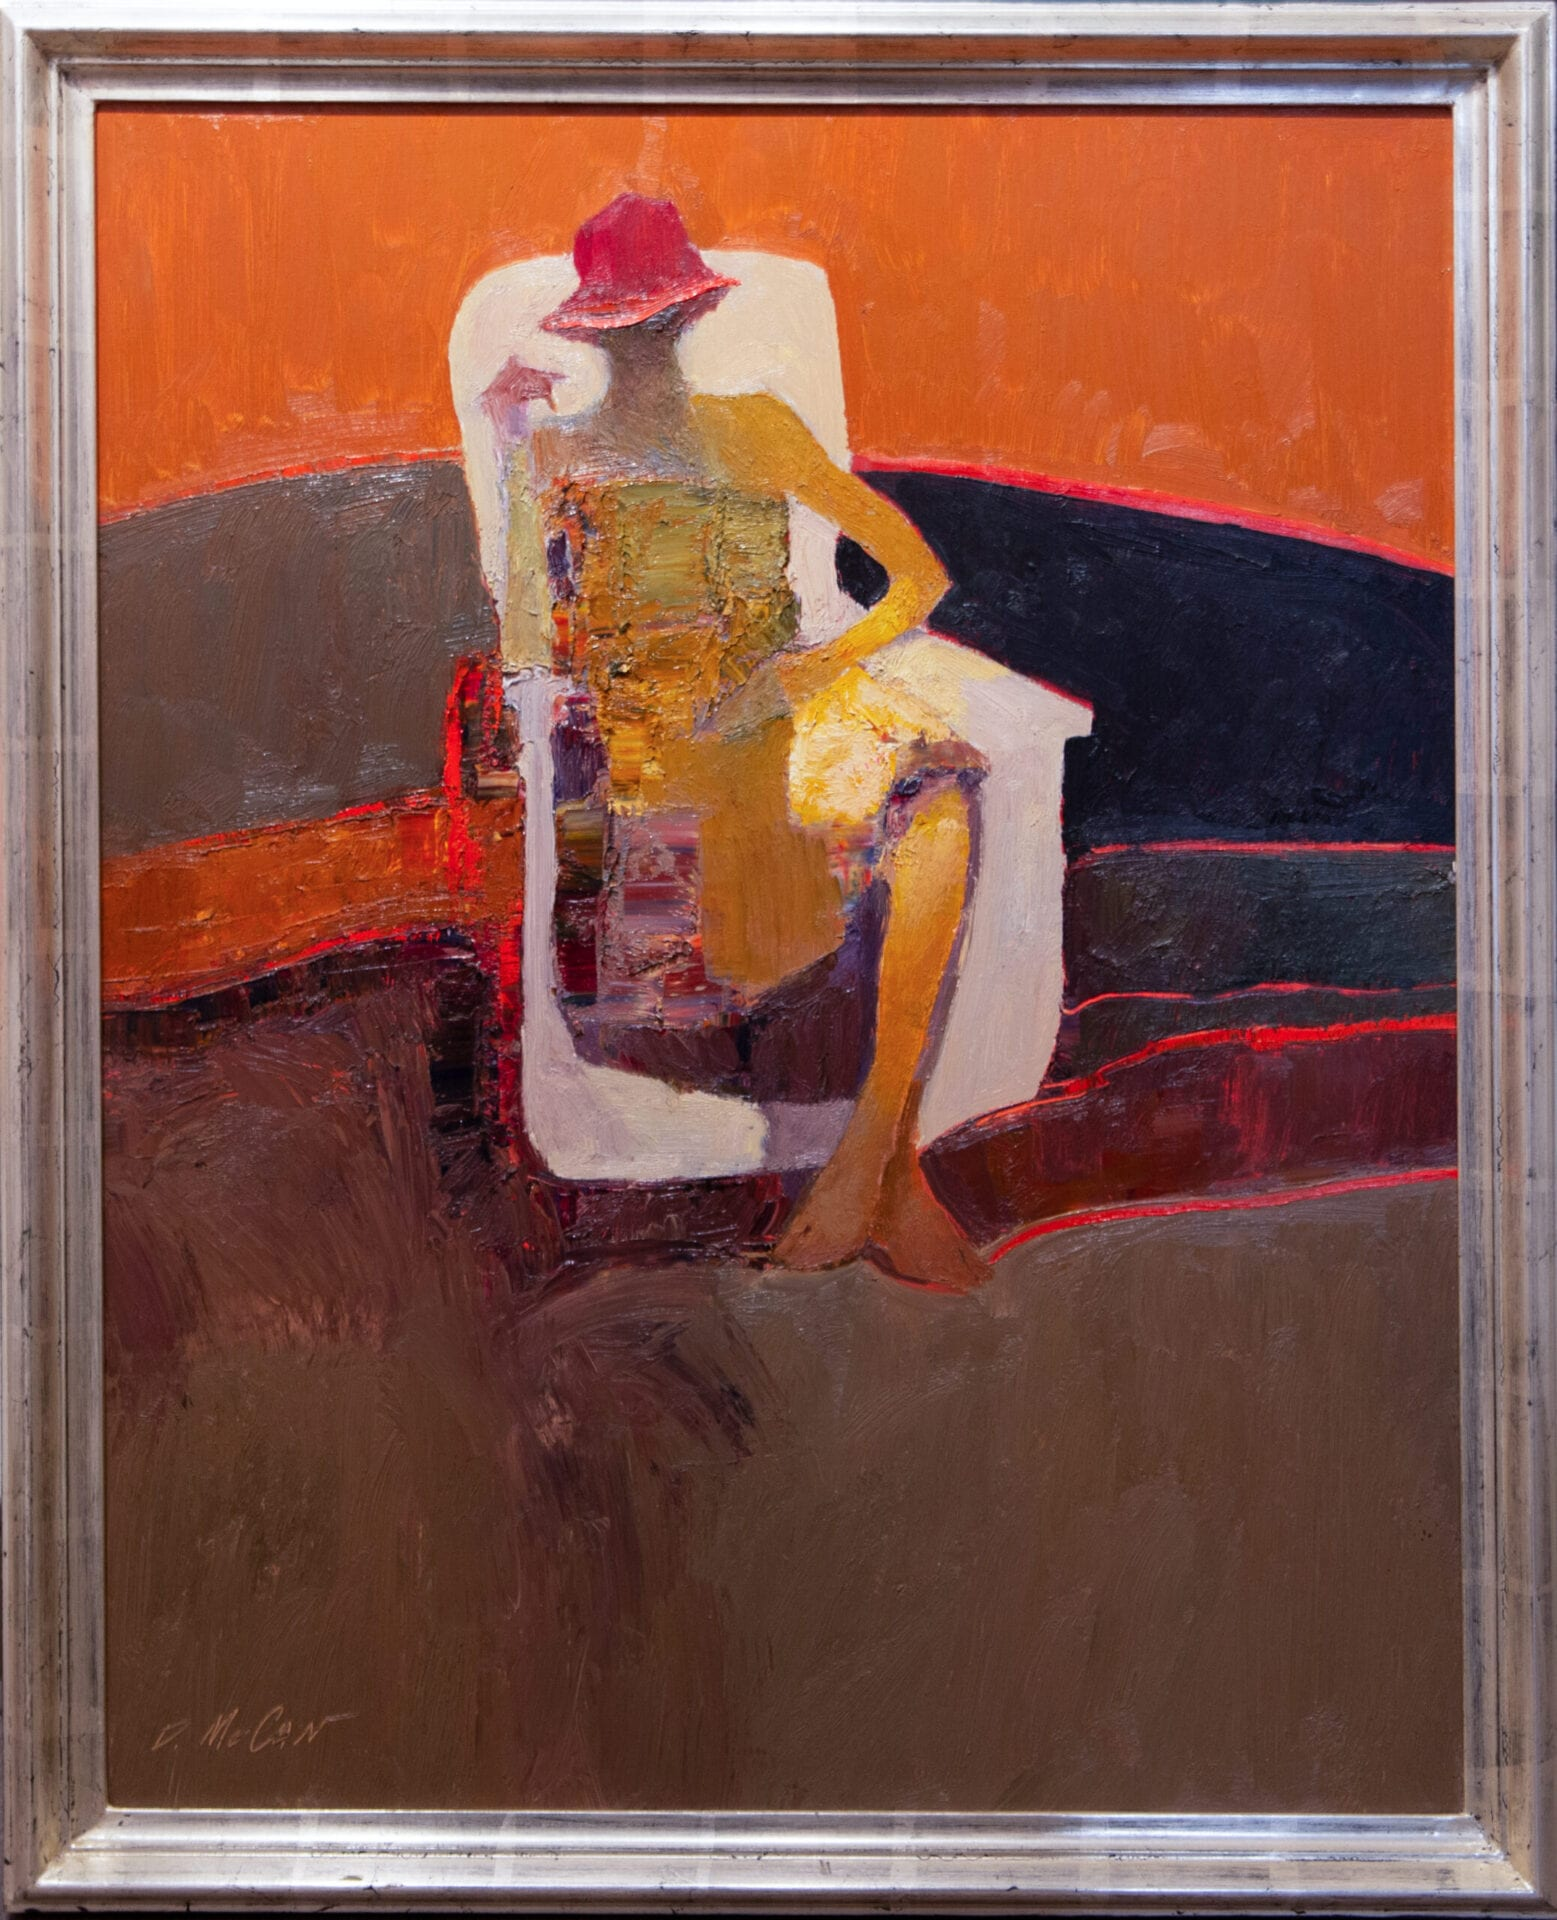 Seated Figure | Dan McCaw | 30 x 24"